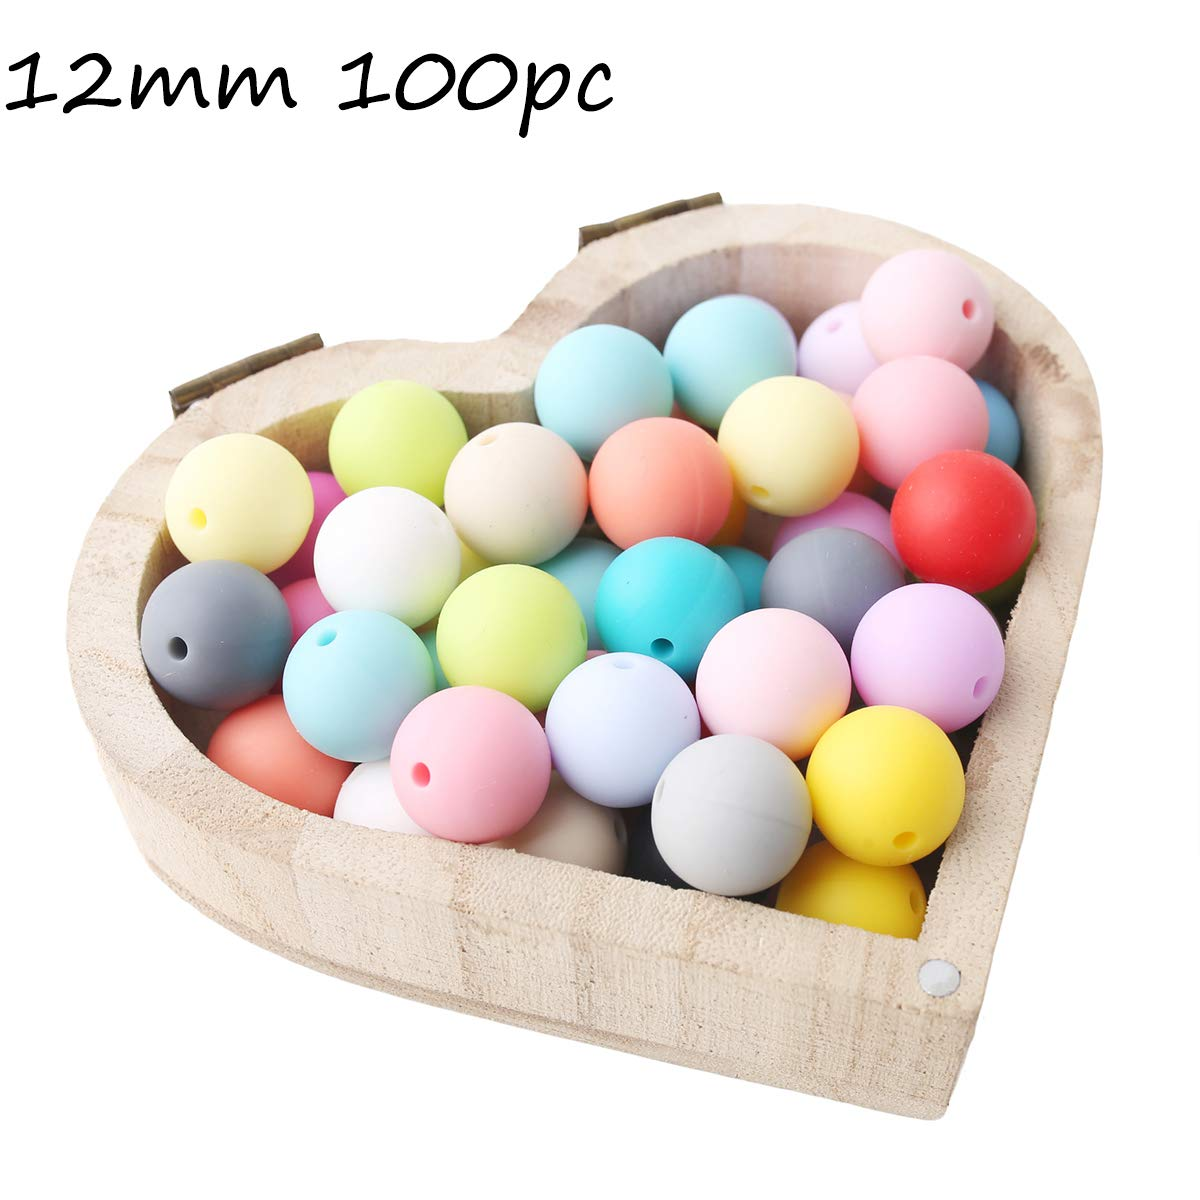 Baby Love Home 100pcs 12mm Loose Chewable Silicone Bead Baby Teether Mix Color DIY Teething Necklace Beads